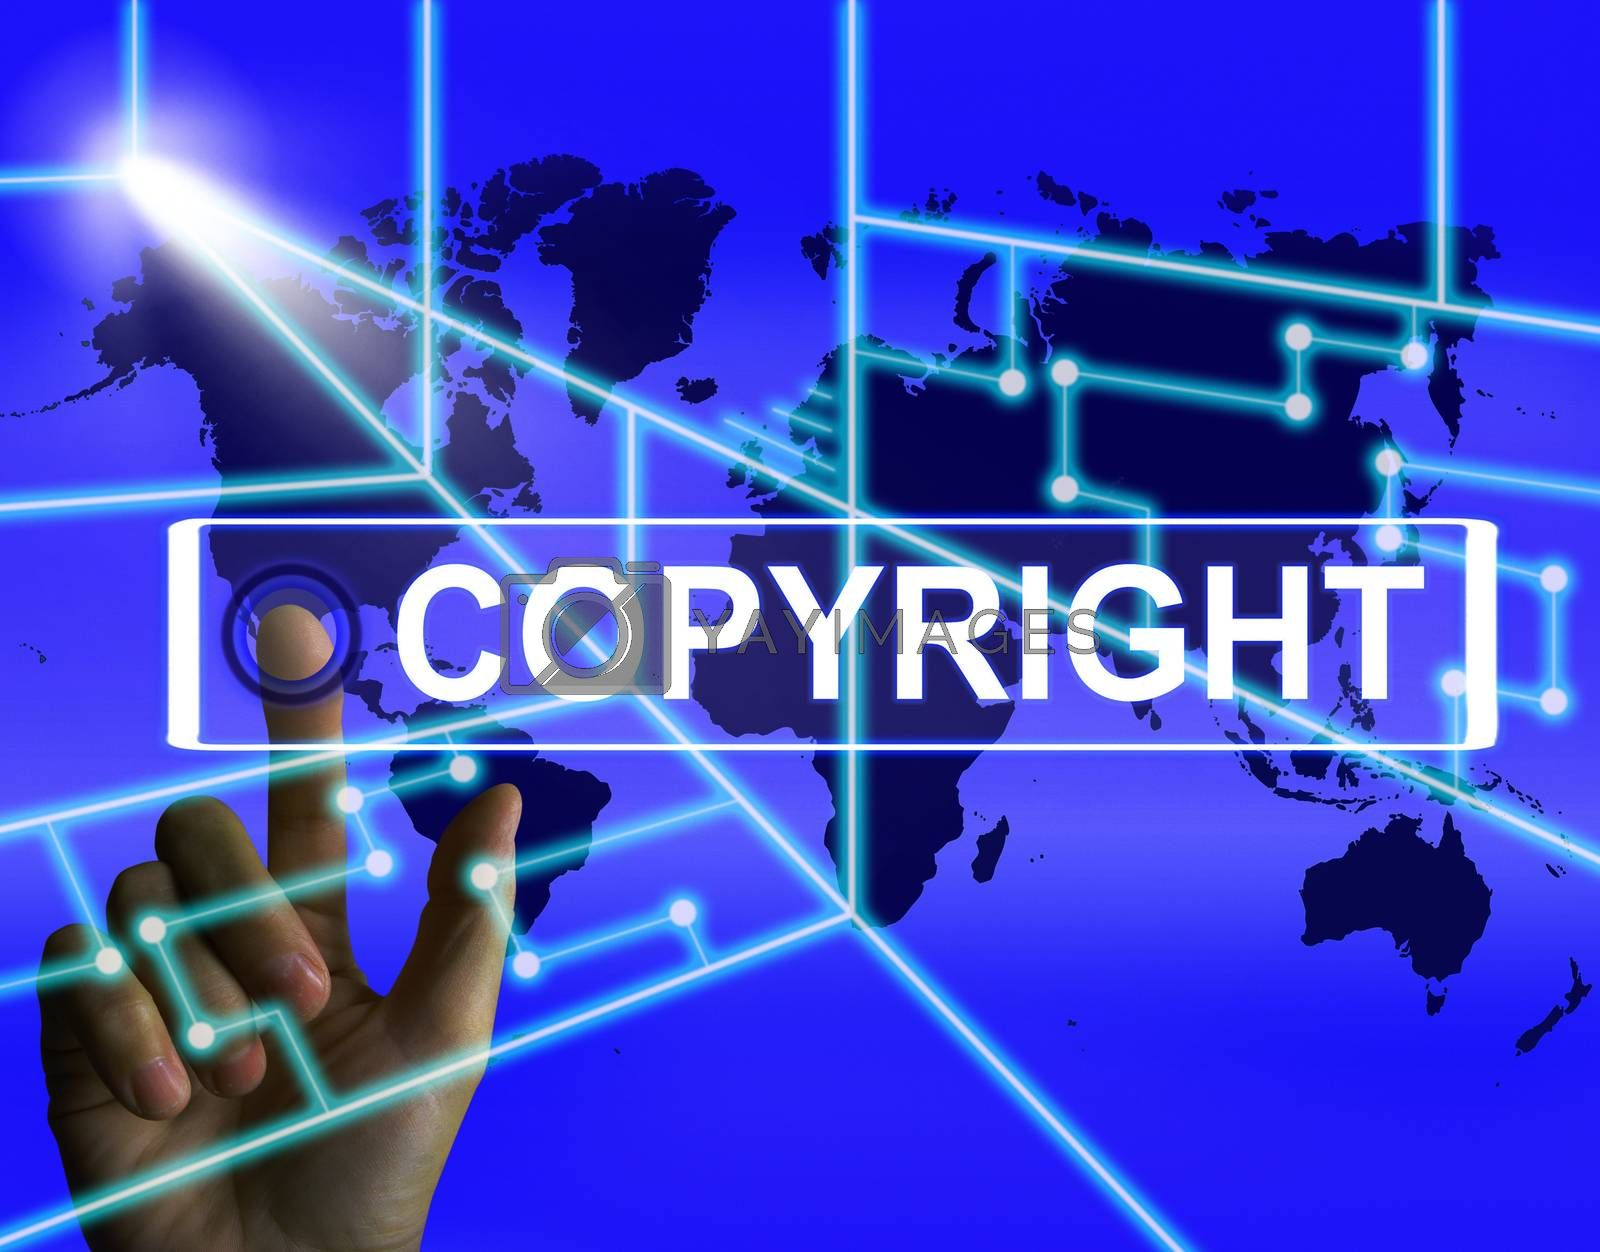 Copyright Screen Means International Patented Intellectual Prope by stuartmiles